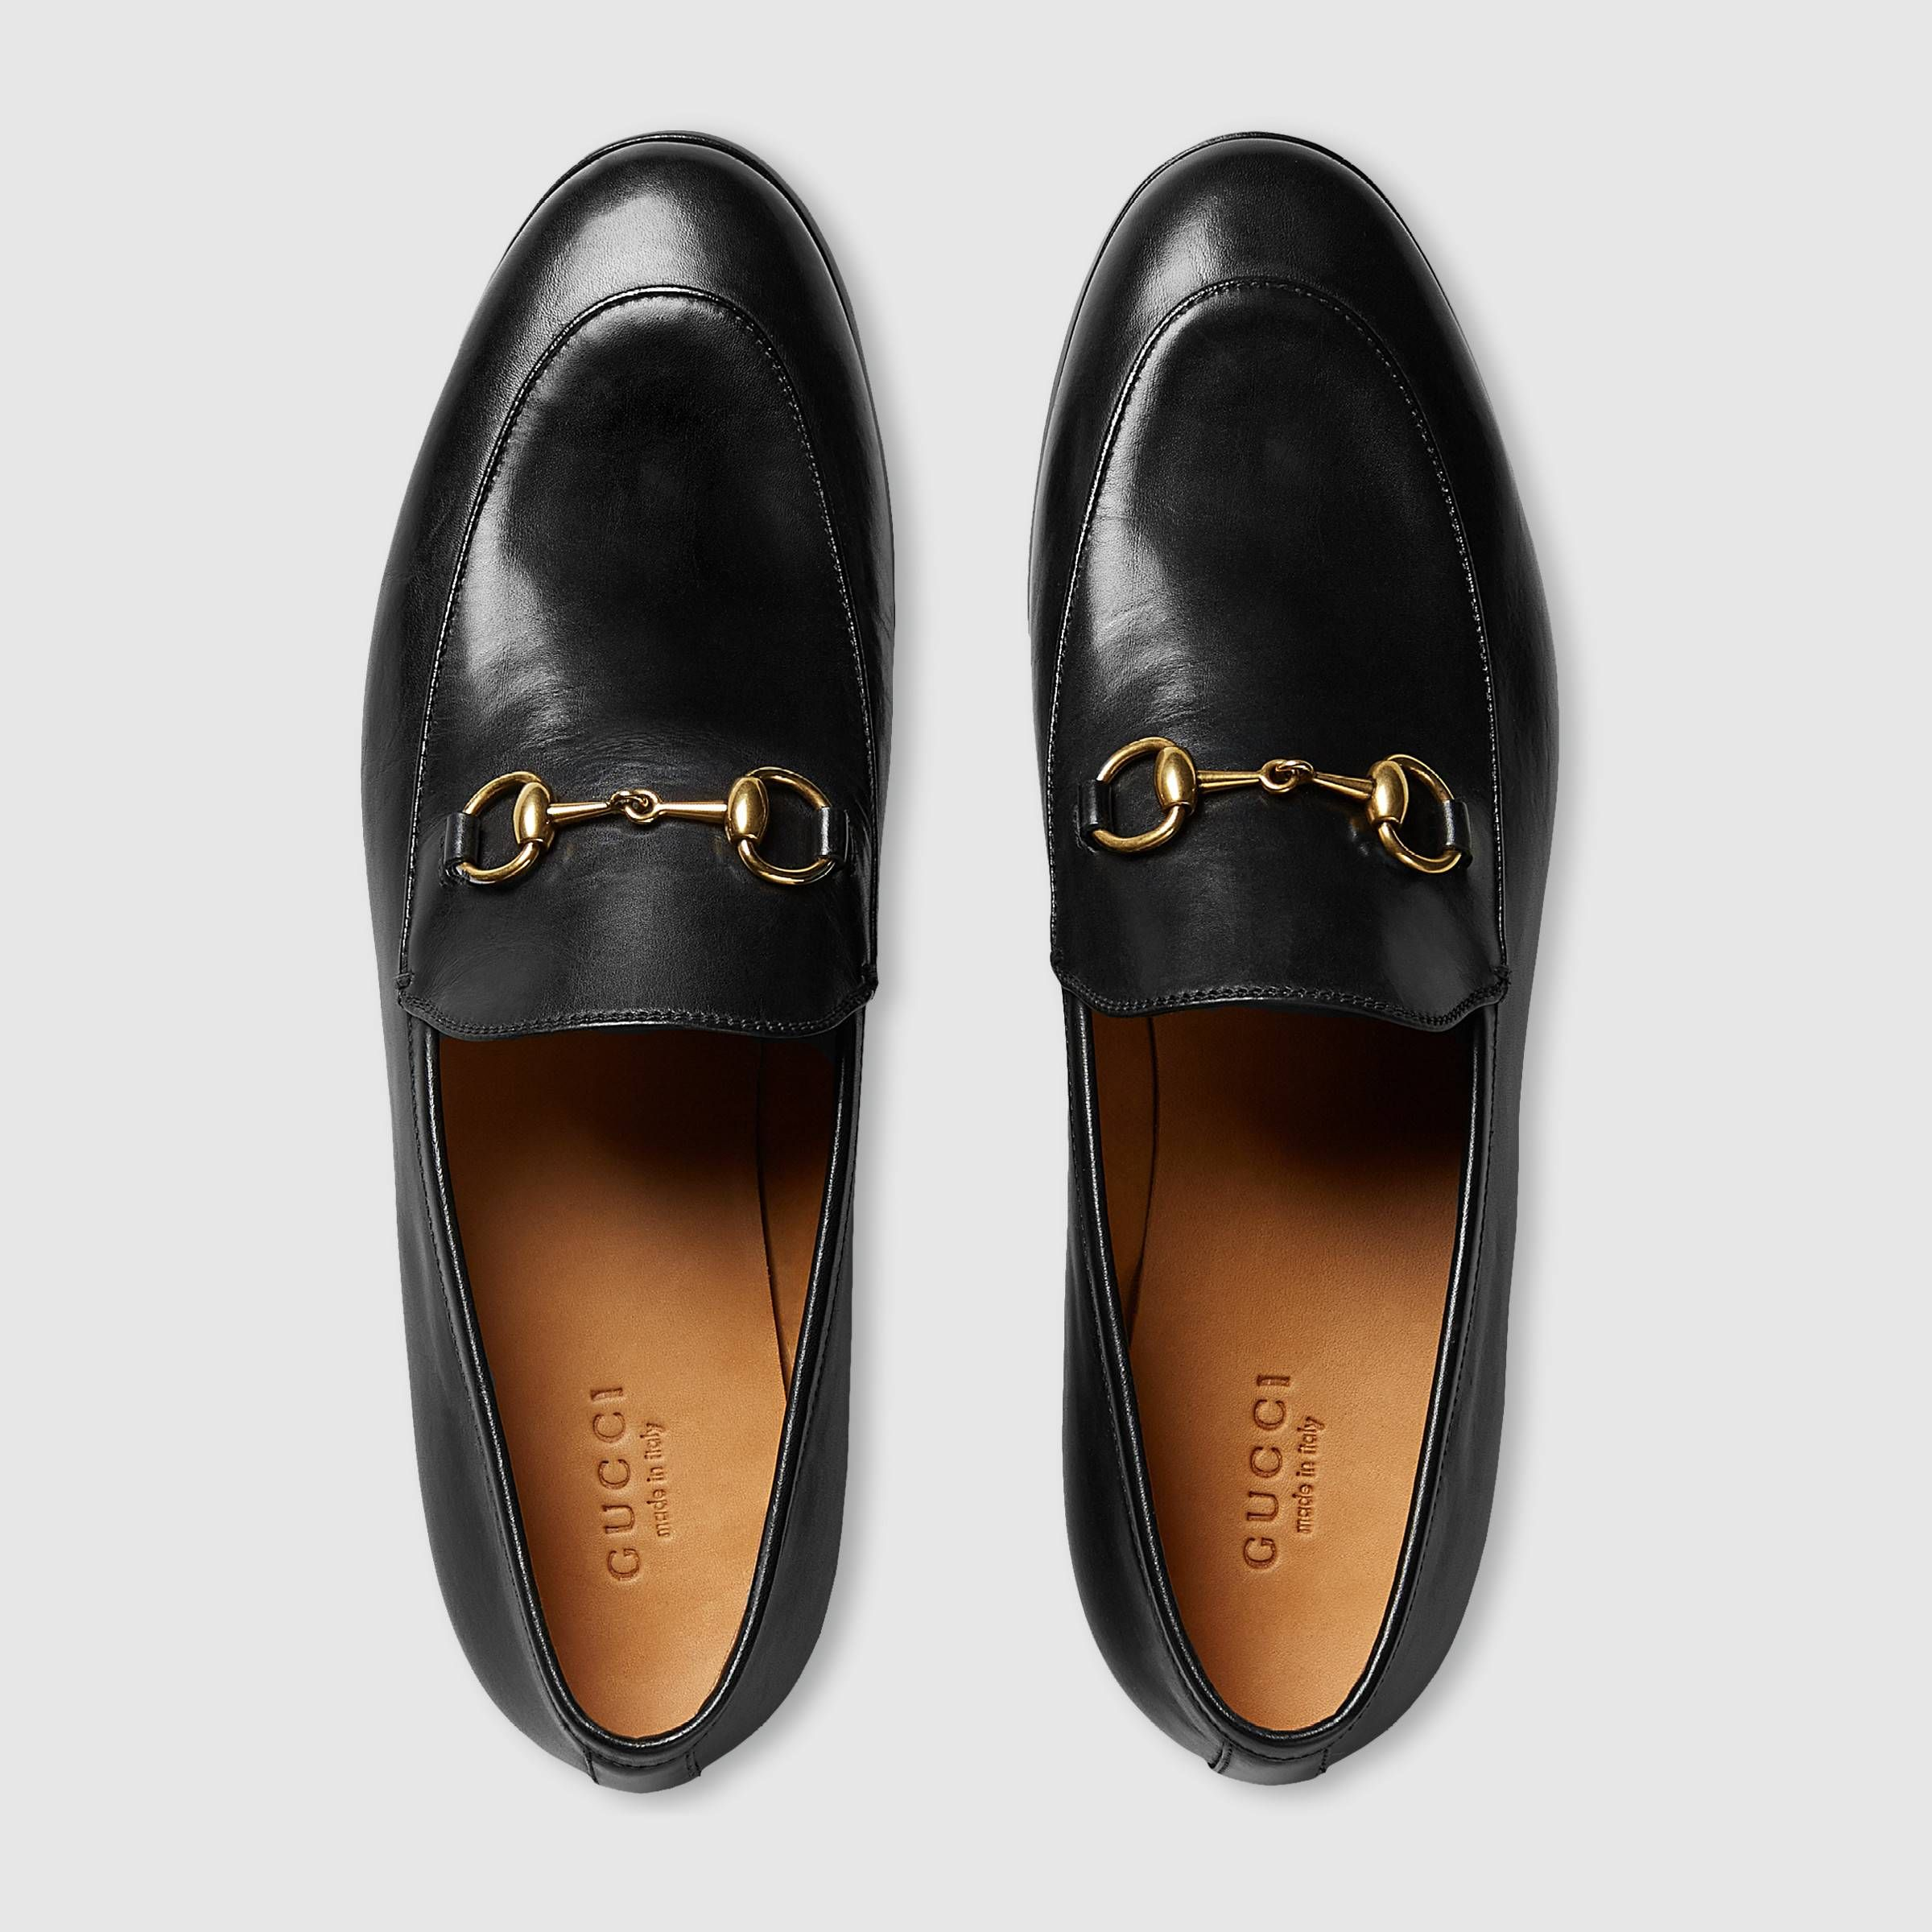 6e85d192a53 Gucci Jordaan leather loafer in Black leather